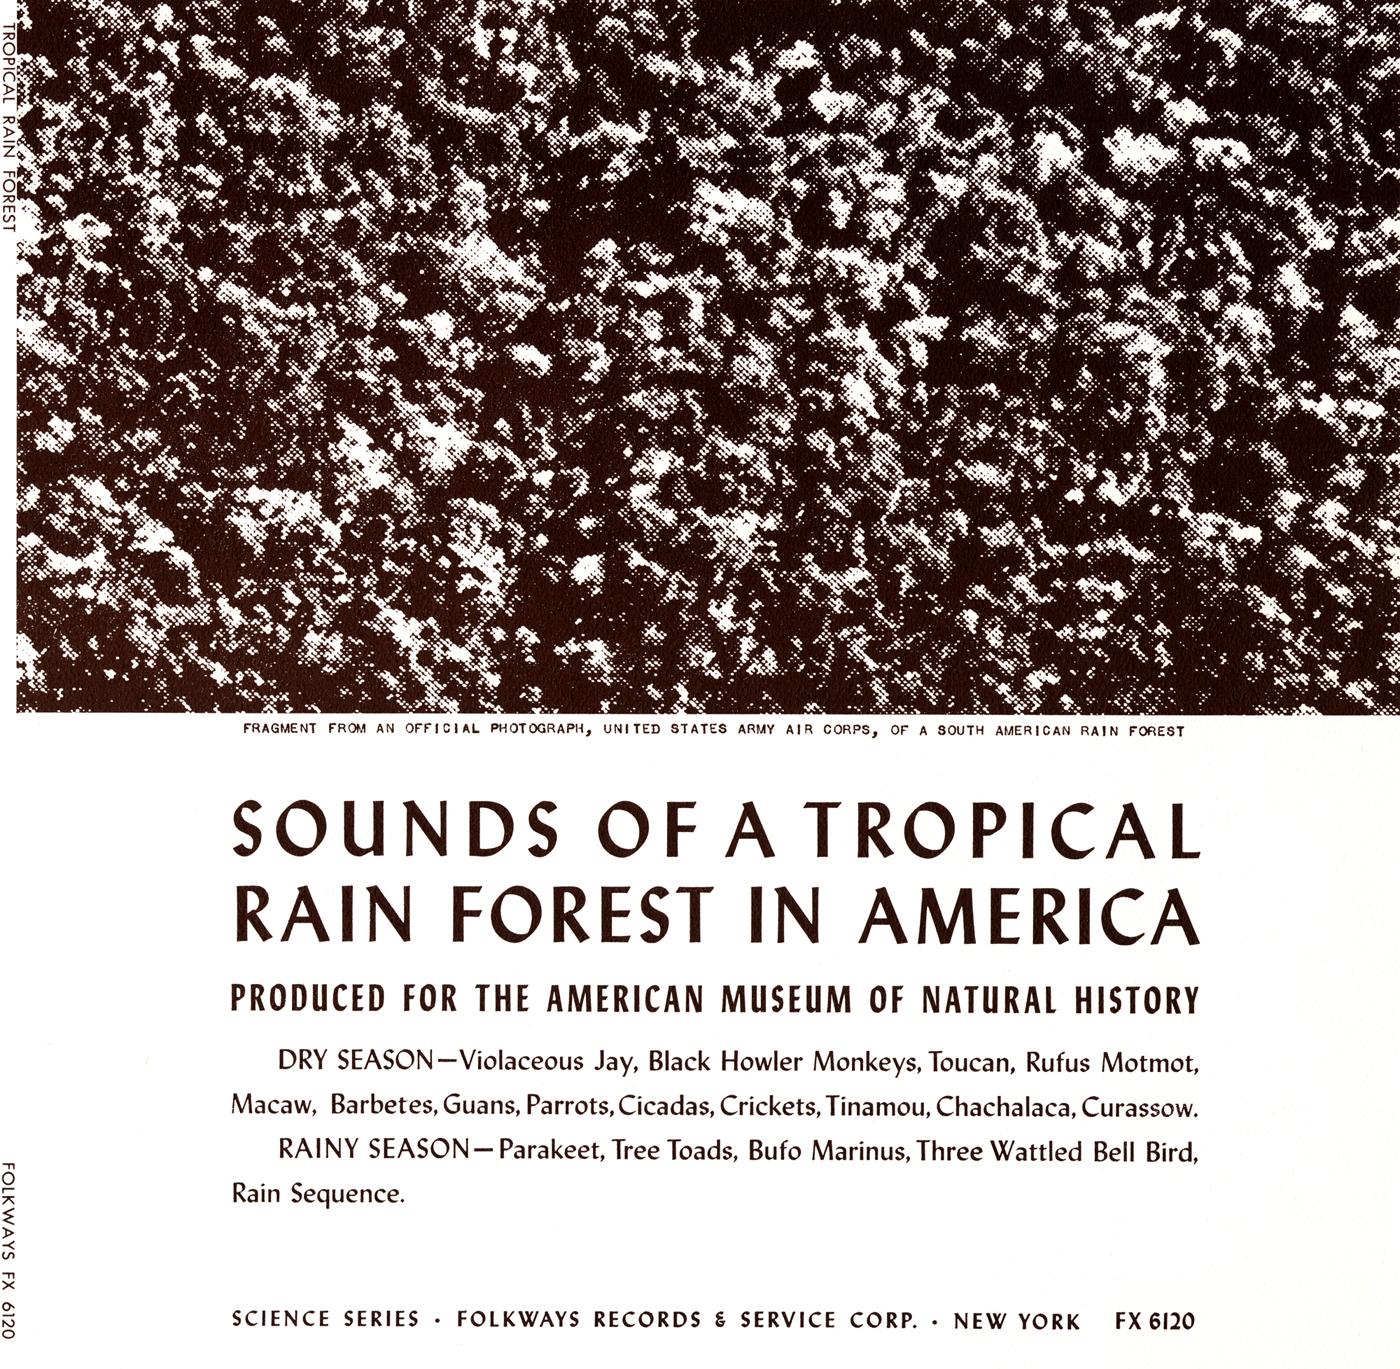 Sounds of a Tropical Rain Forest: Produced for the American Museum